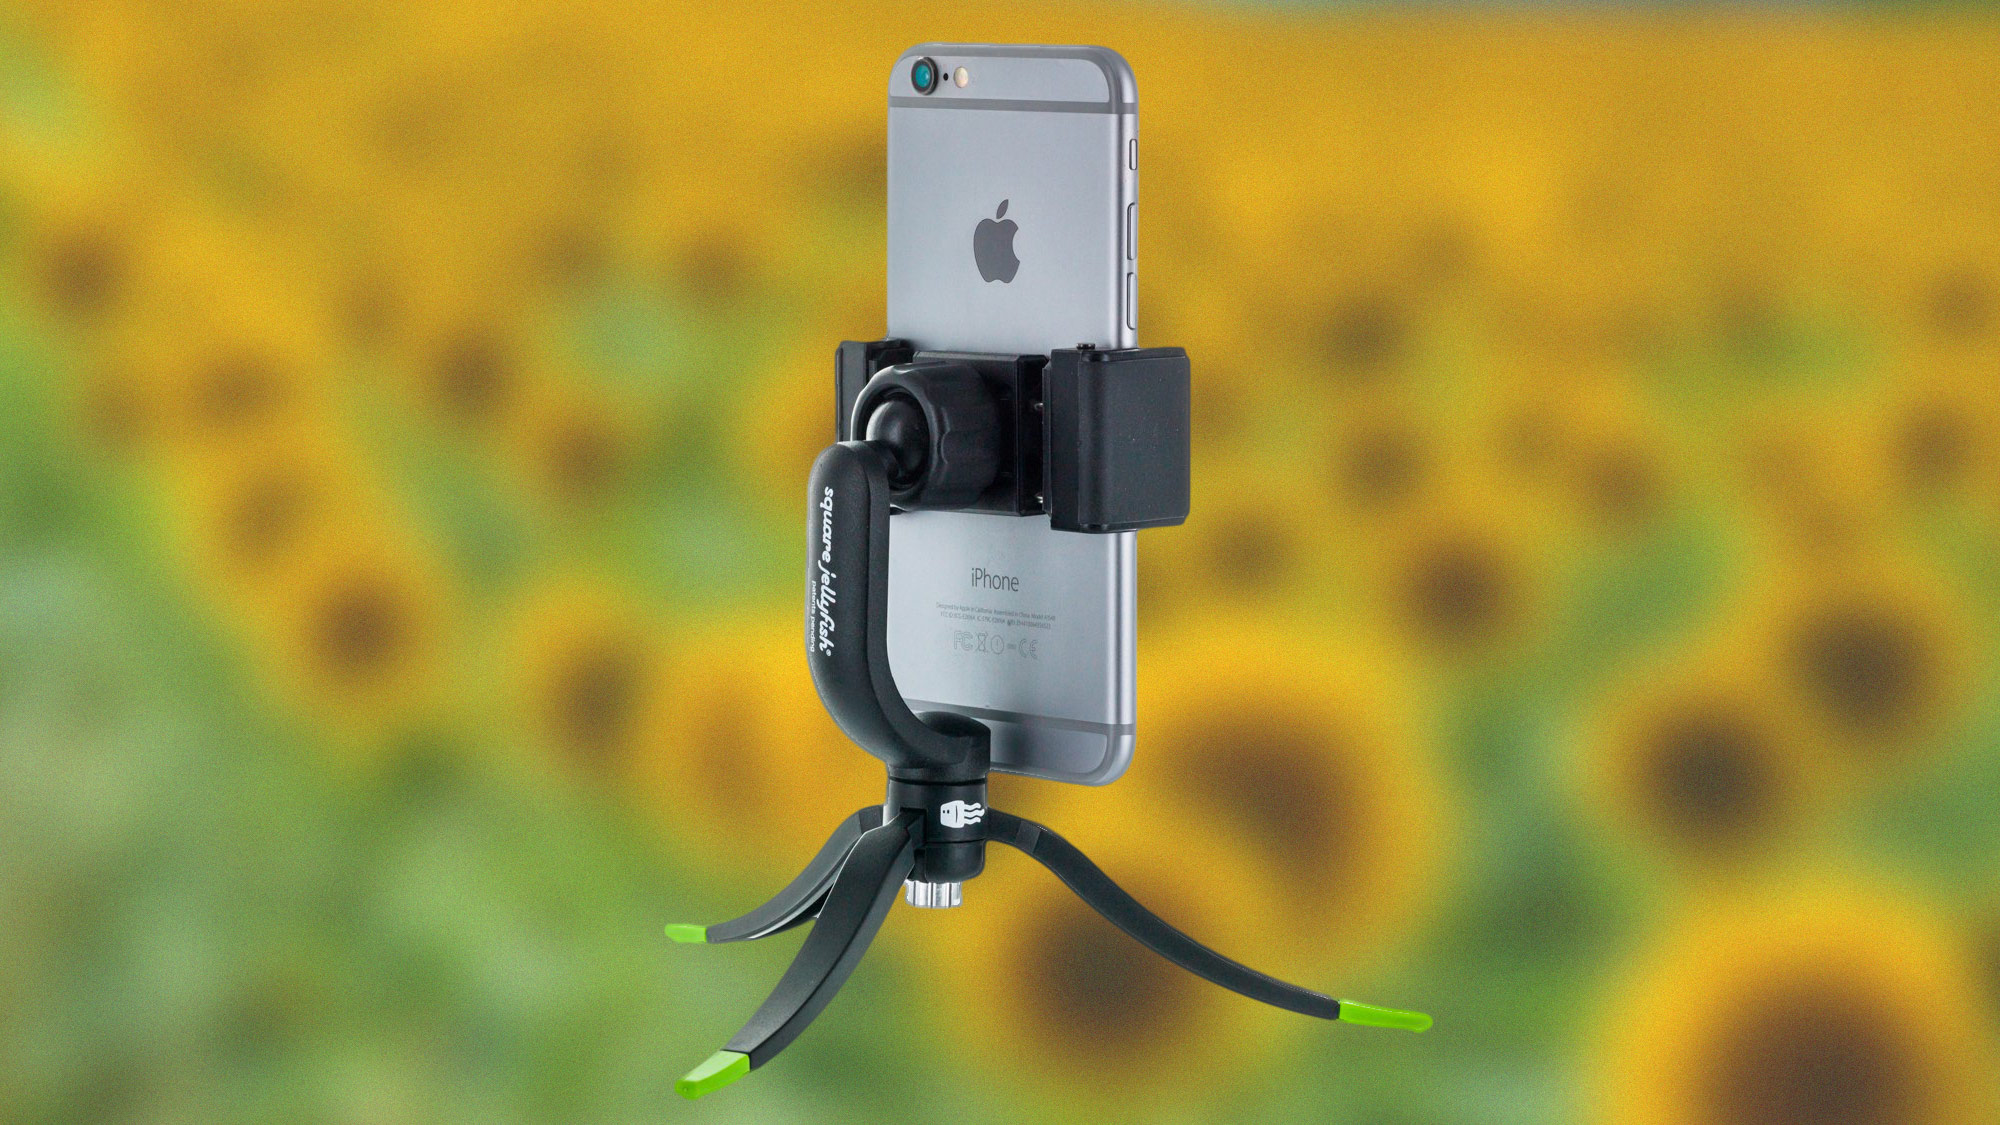 best iPhone tripods: Square Jellyfish Jelly Grip mount & Jelly Long Legs